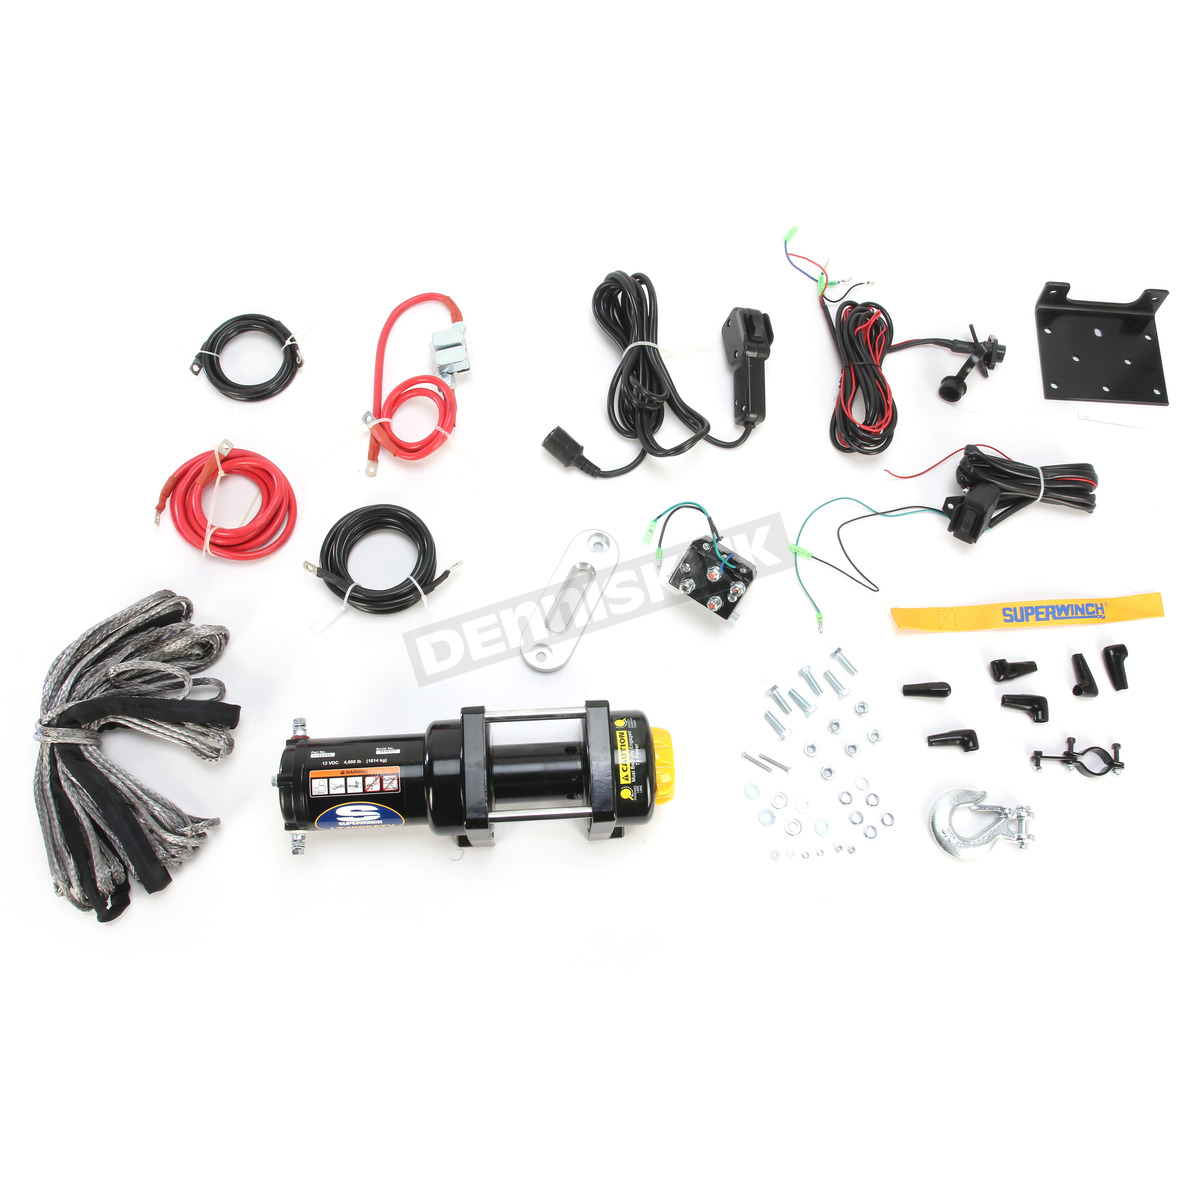 hight resolution of lt4000atv sr 4000lb winch with synthetic rope 1140230